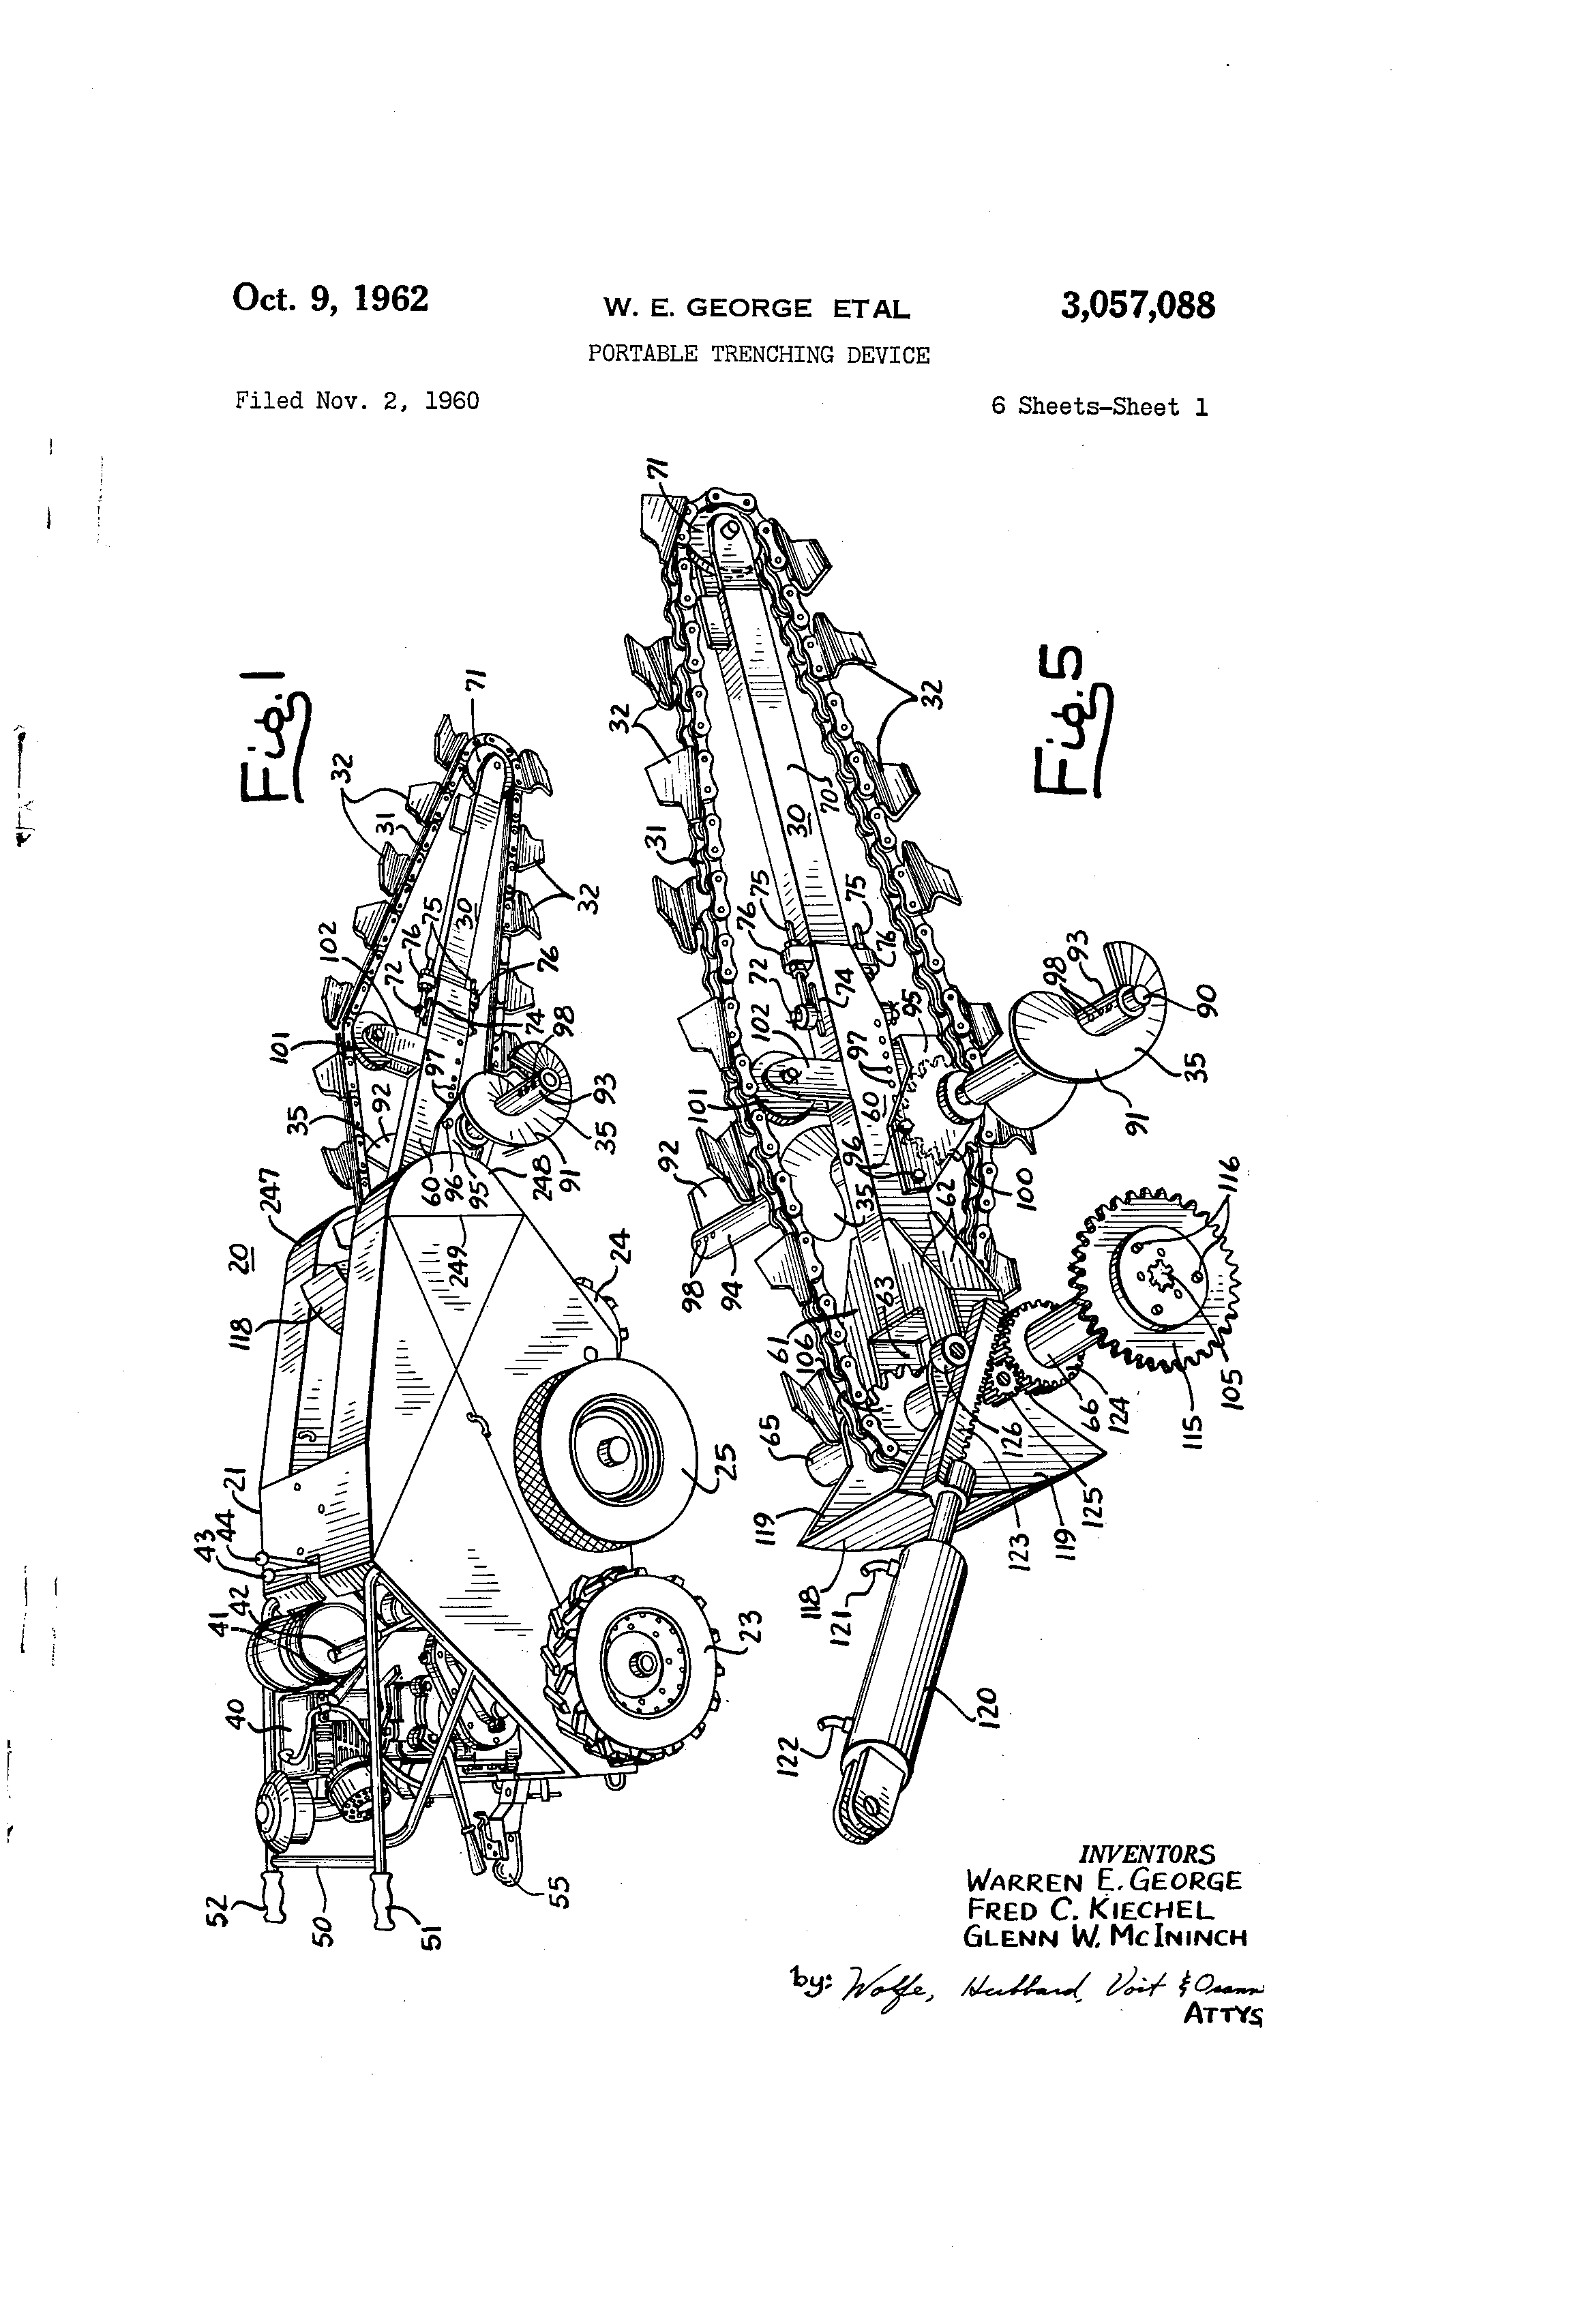 patent us3057088 - portable trenching device